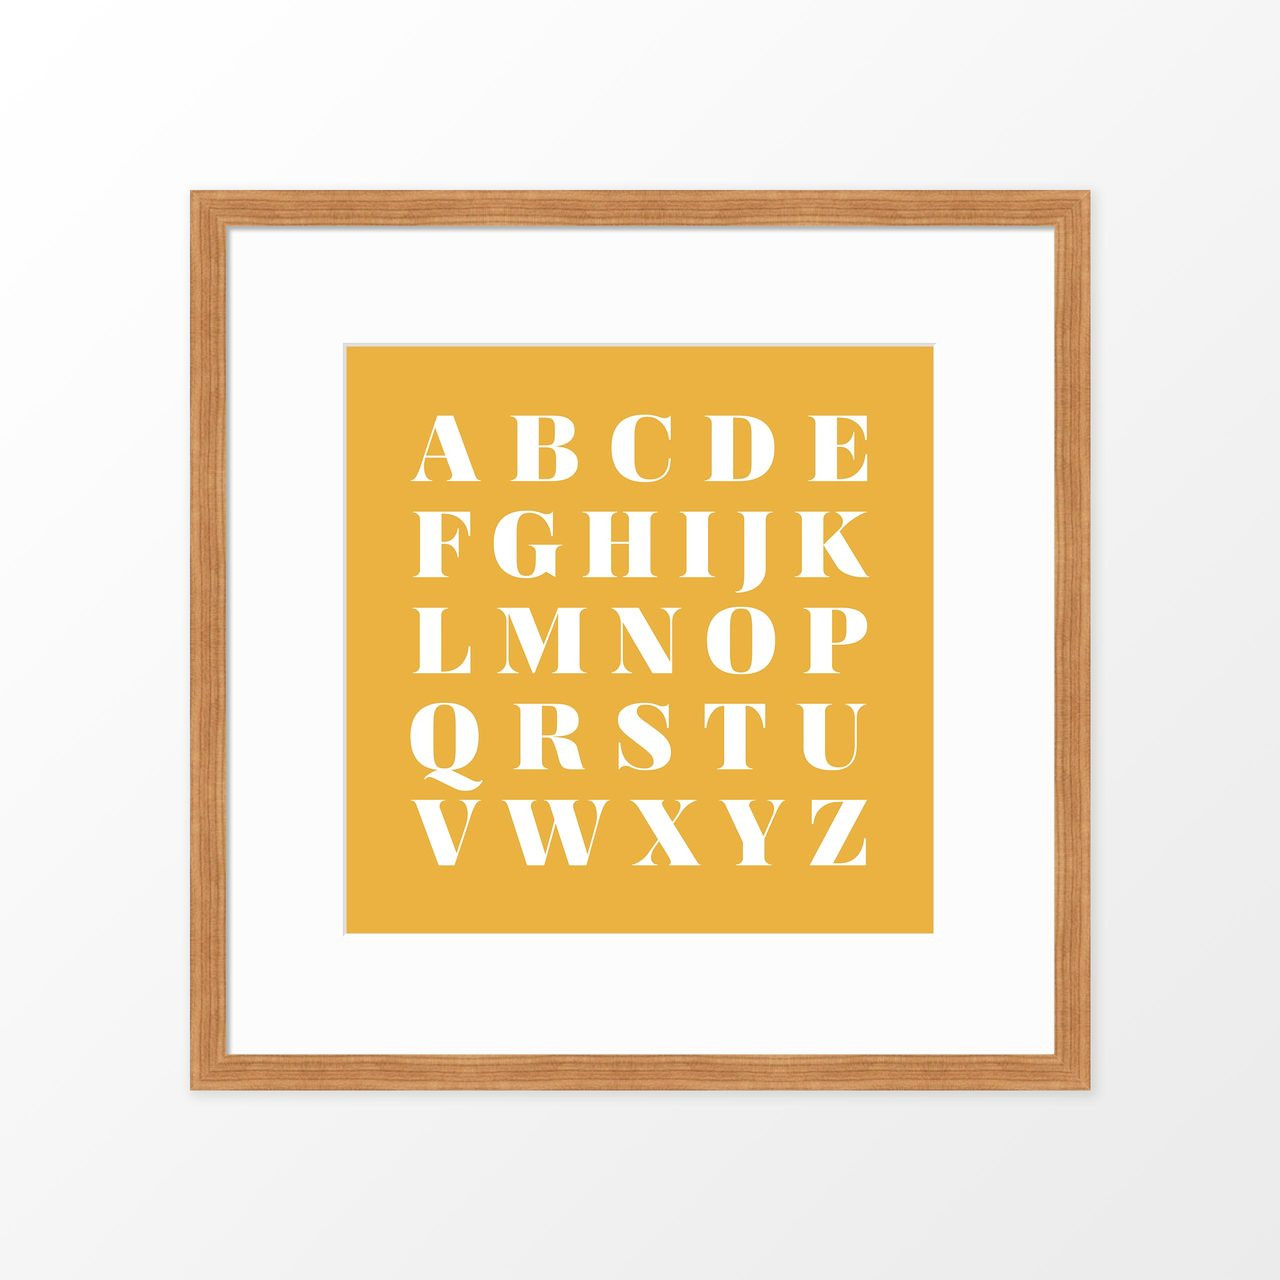 Alphabet Square Kids Poster / Framed Art Print from The Printed Home